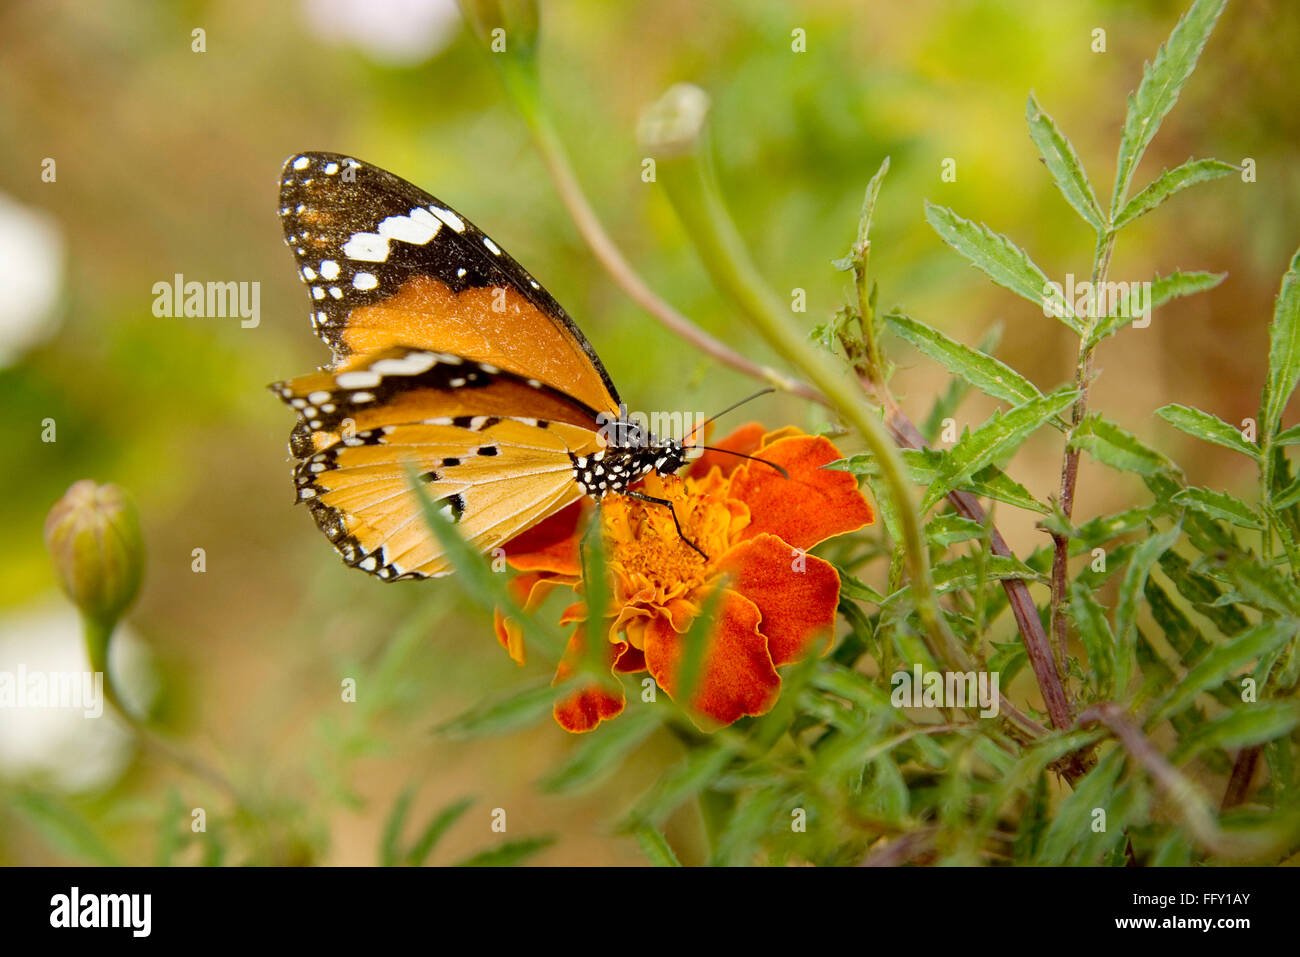 Orange Tiger Butterfly Imágenes De Stock & Orange Tiger Butterfly ...